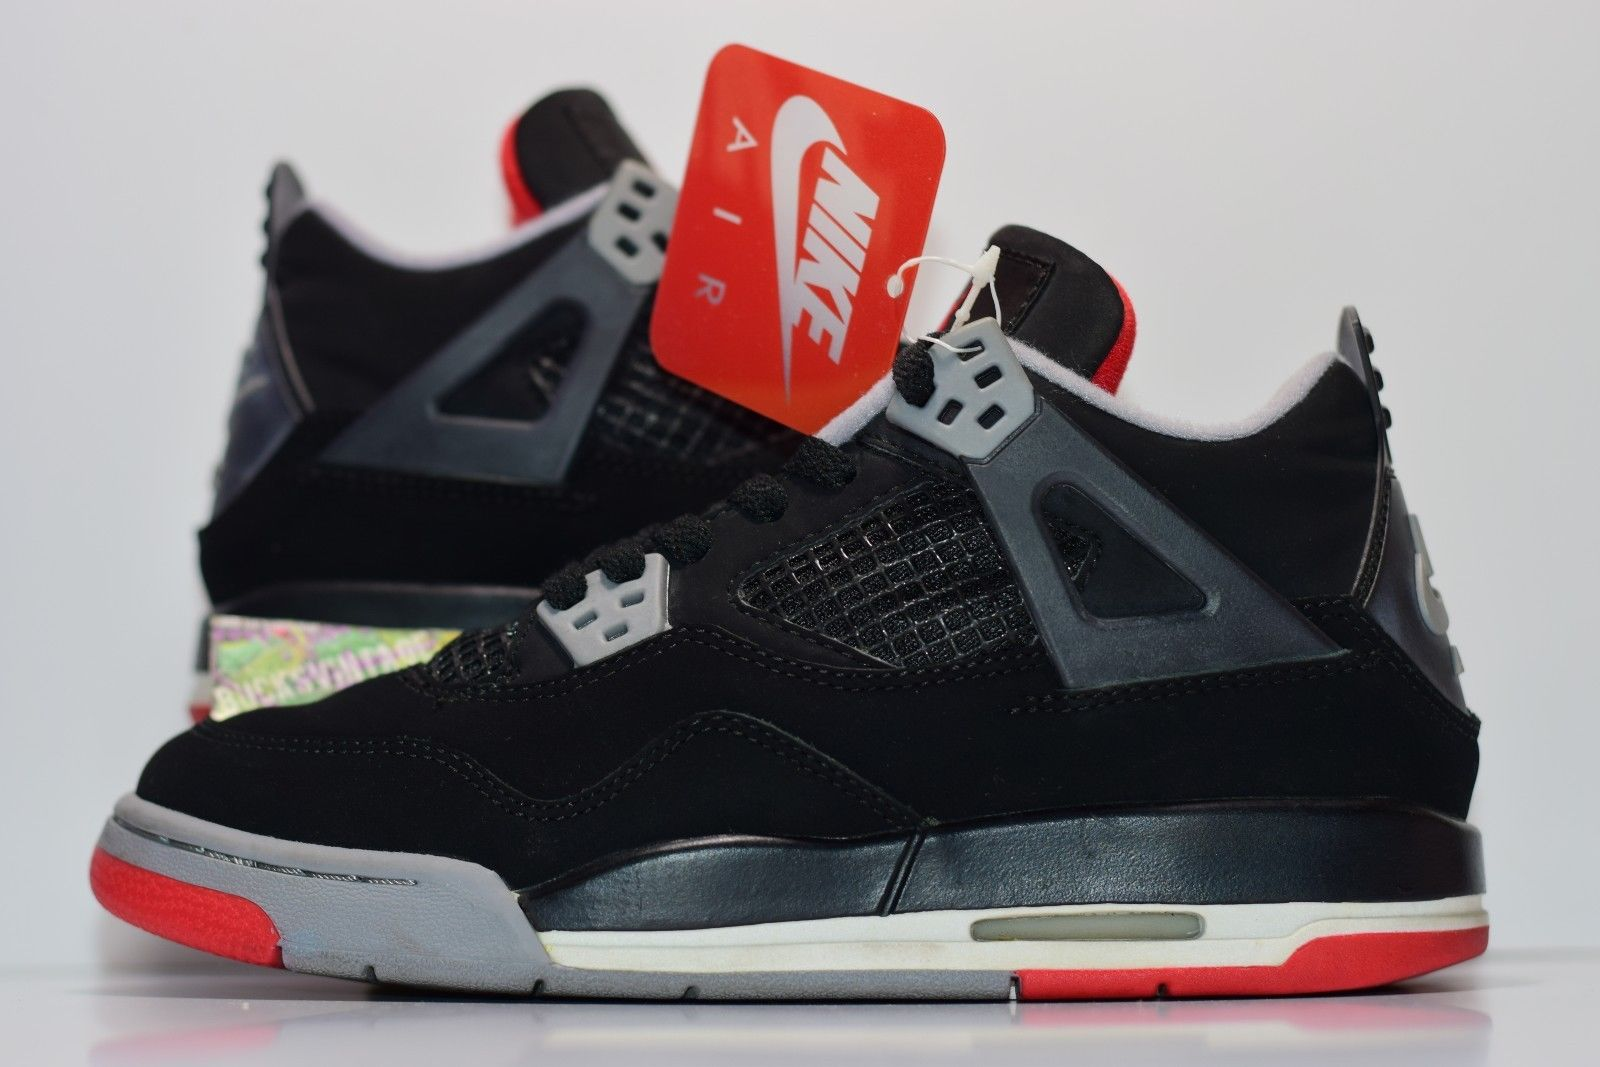 best authentic 62b3e c154d Size 5   1999 Nike Air Jordan IV 4 BRED OG Authentic 136013-001